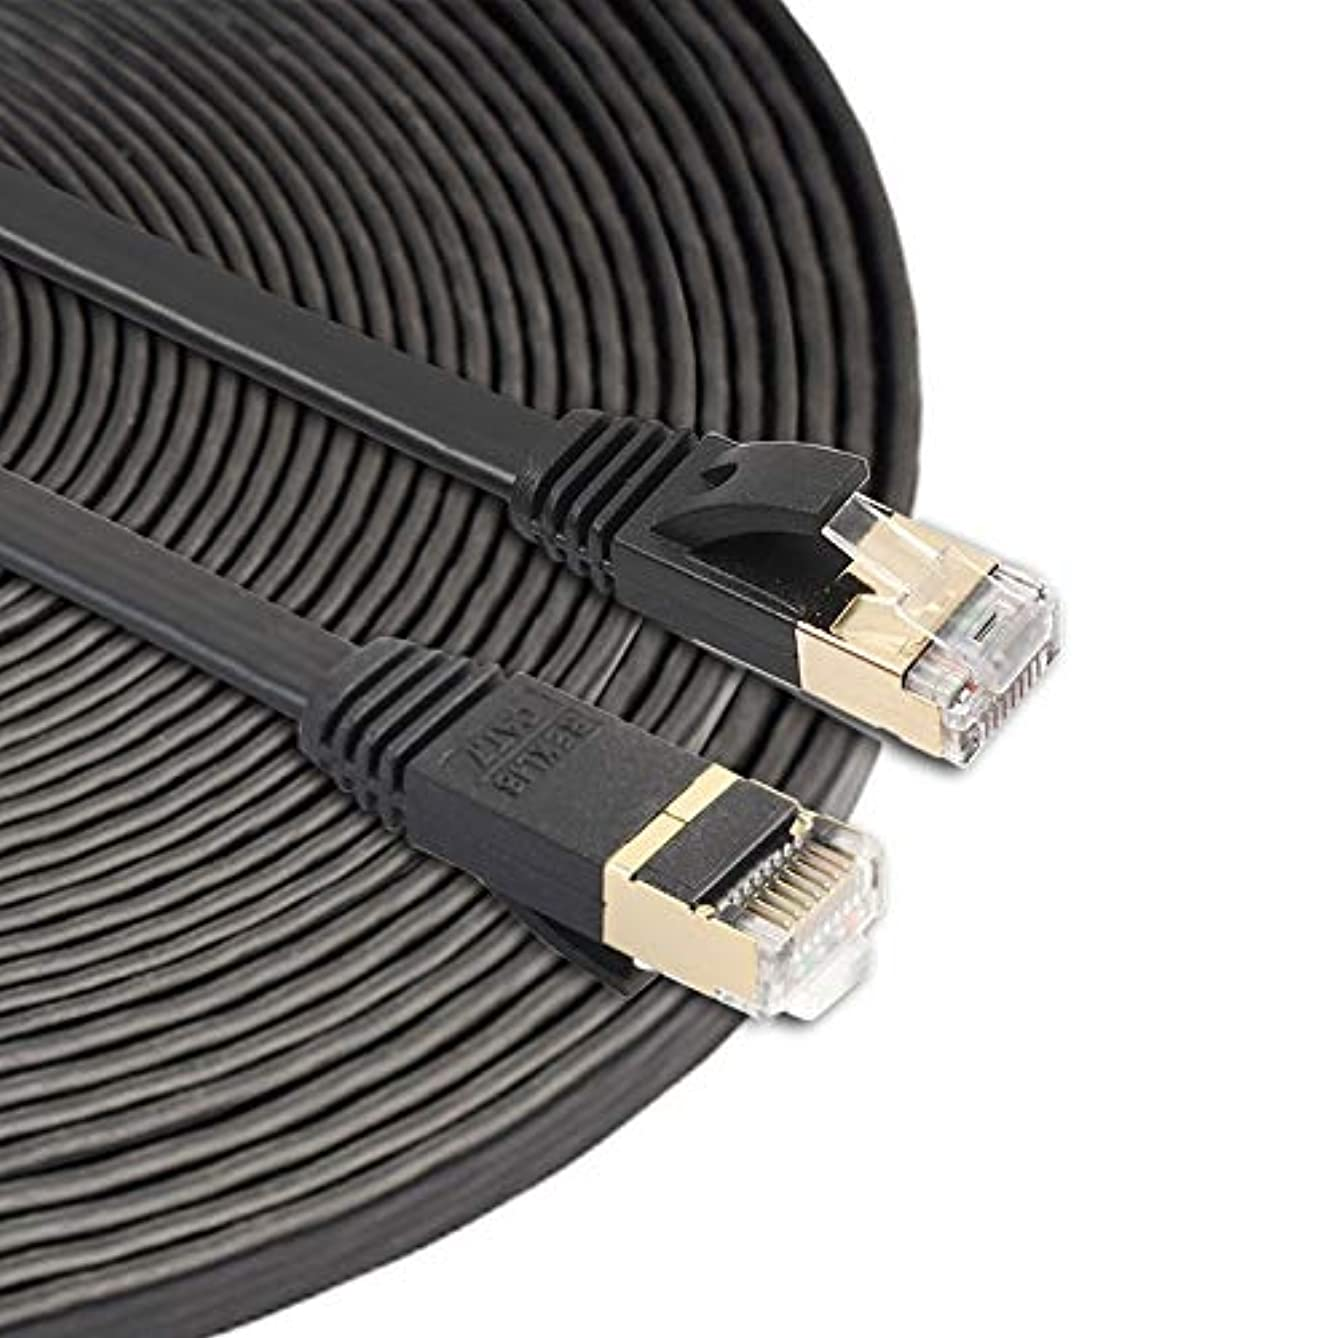 Computer Cables 15m CAT7 10 Gigabit Ethernet Ultra Flat Patch Cable for Modem Router LAN Network - Built with Shielded RJ45 Connectors Network Cables